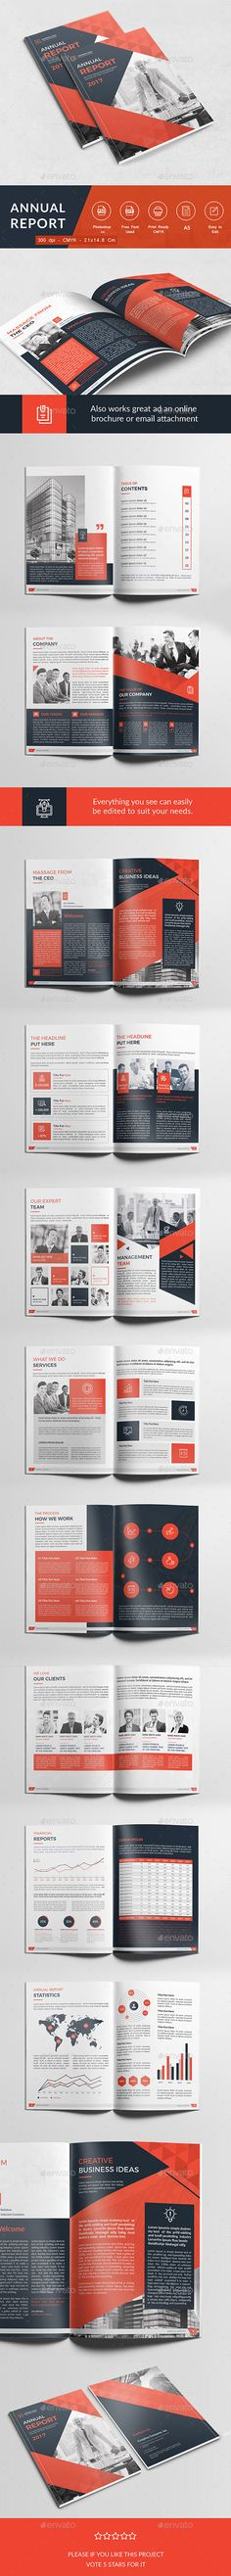 A5 Annual Report  — PSD Template #inspiration #elegant #visual • Download ➝ https://graphicriver.net/item/a5-annual-report/18601994?ref=pxcr